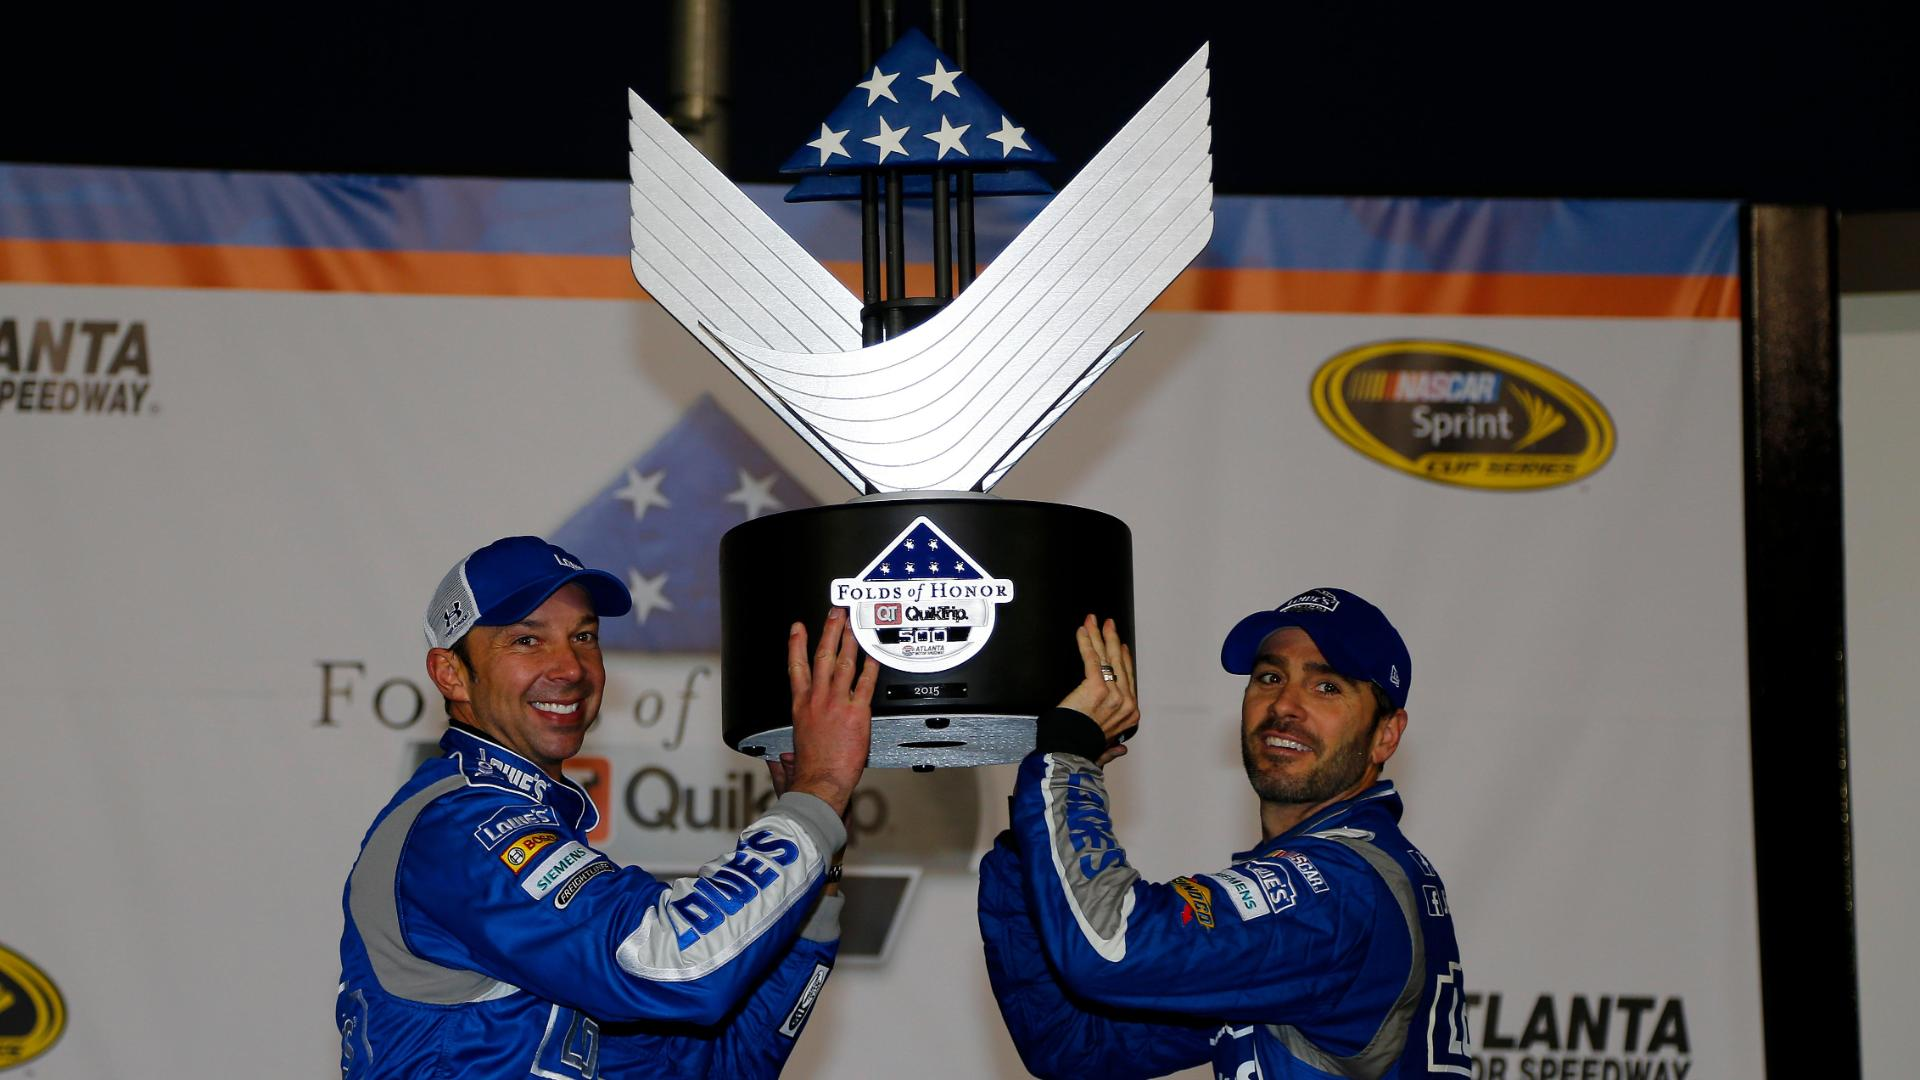 Jimmie Johnson Wins At Atlanta